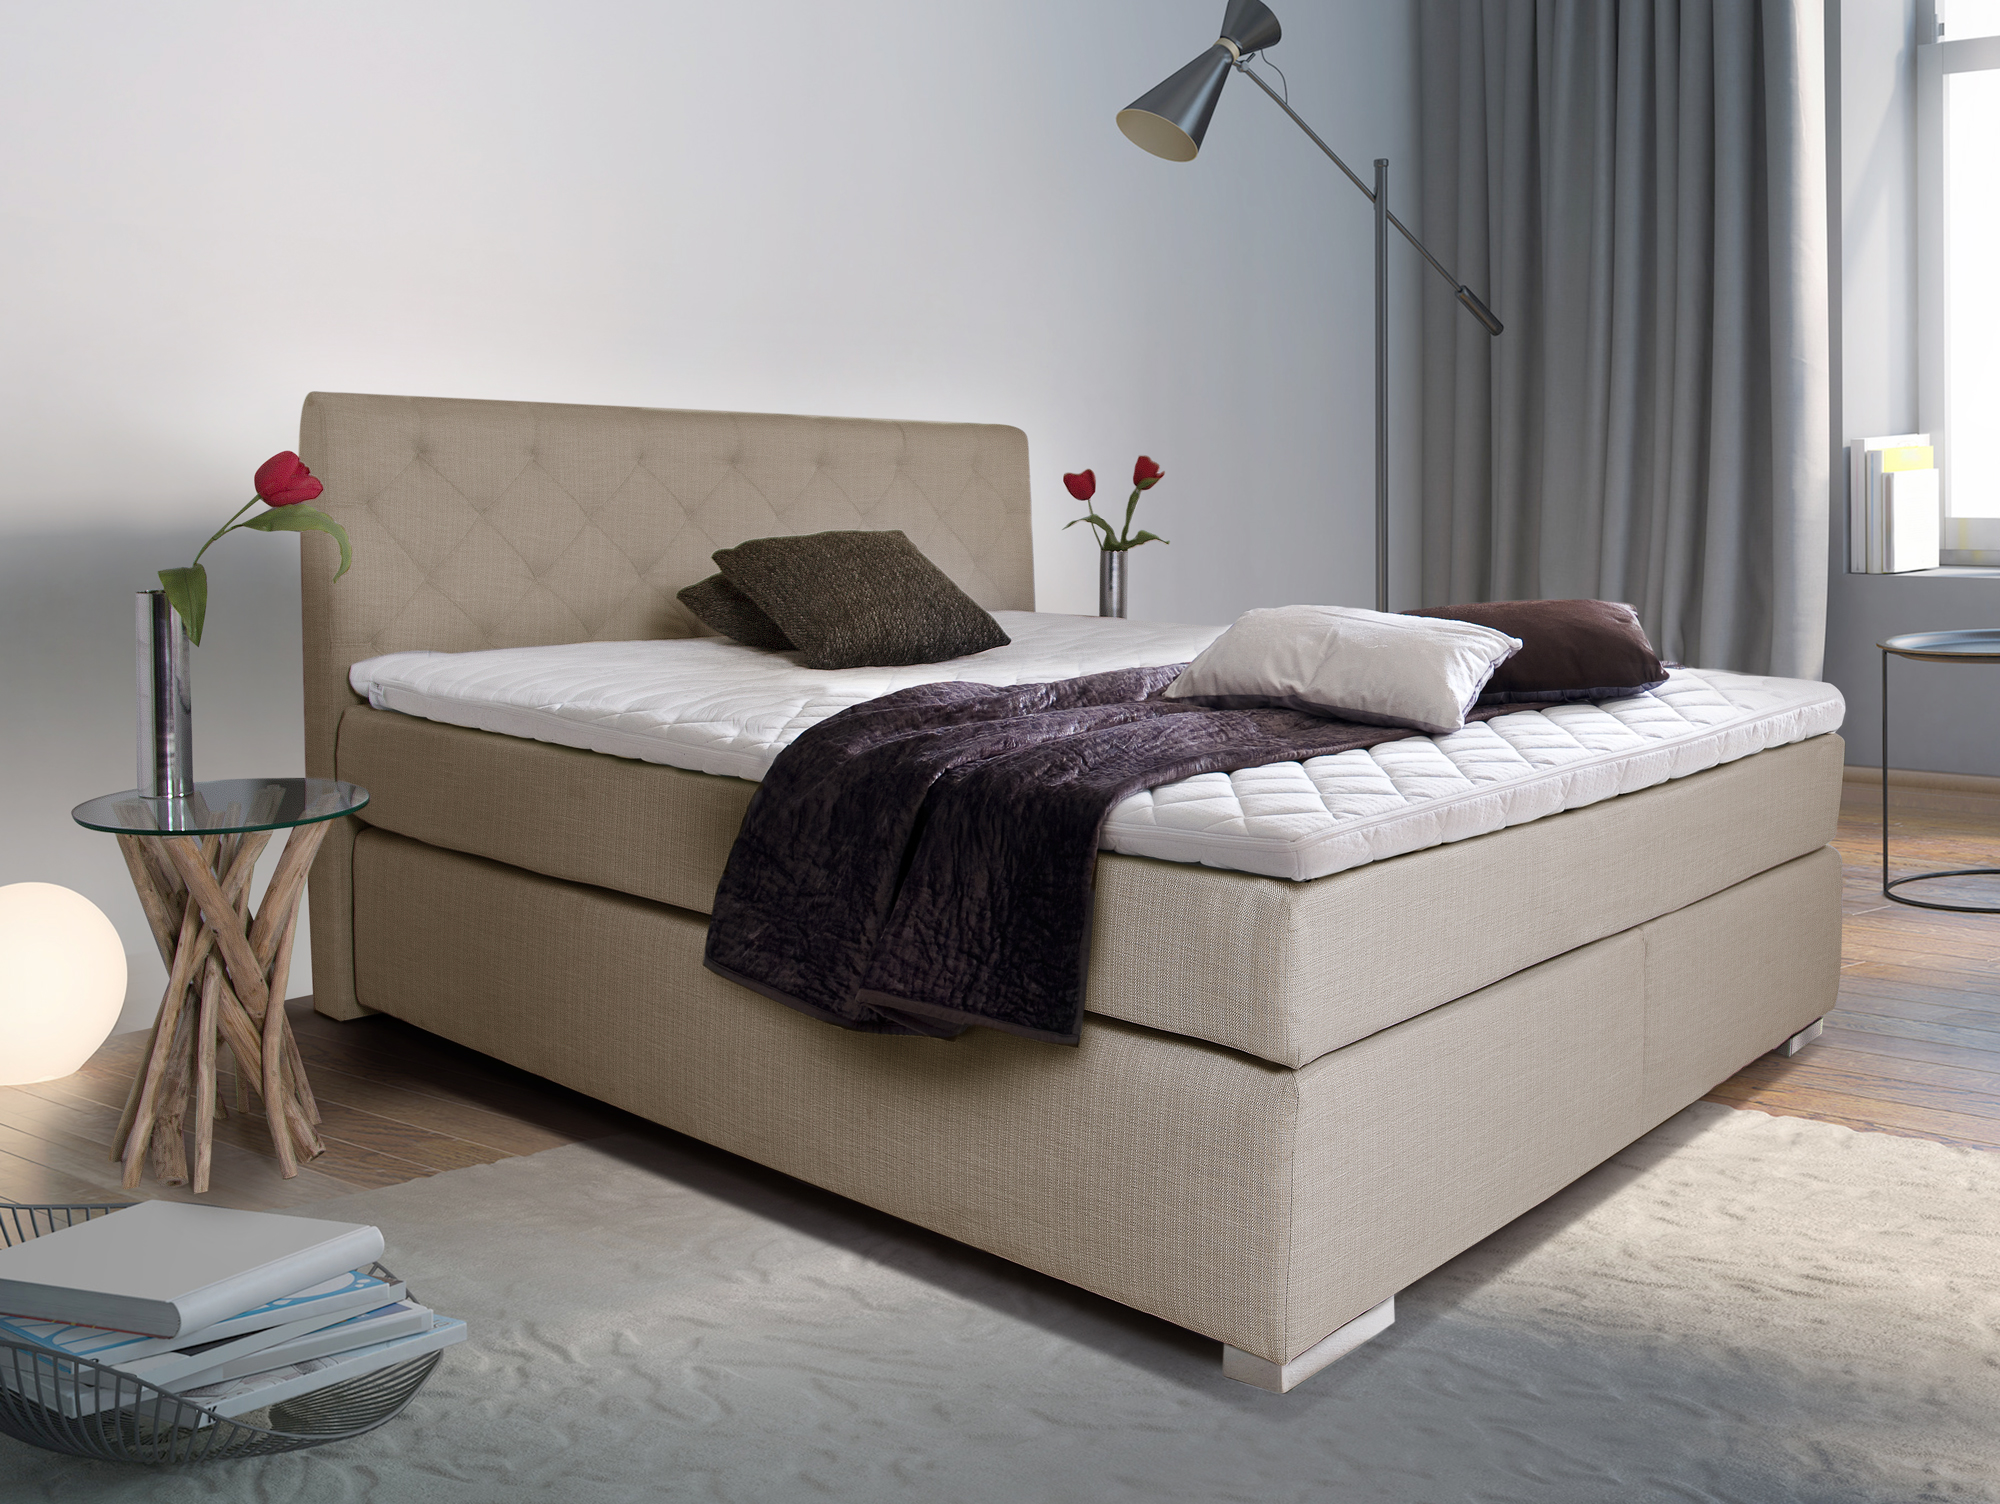 premium boxspringbett inkl kopfteil 90 x 200 cm beige. Black Bedroom Furniture Sets. Home Design Ideas